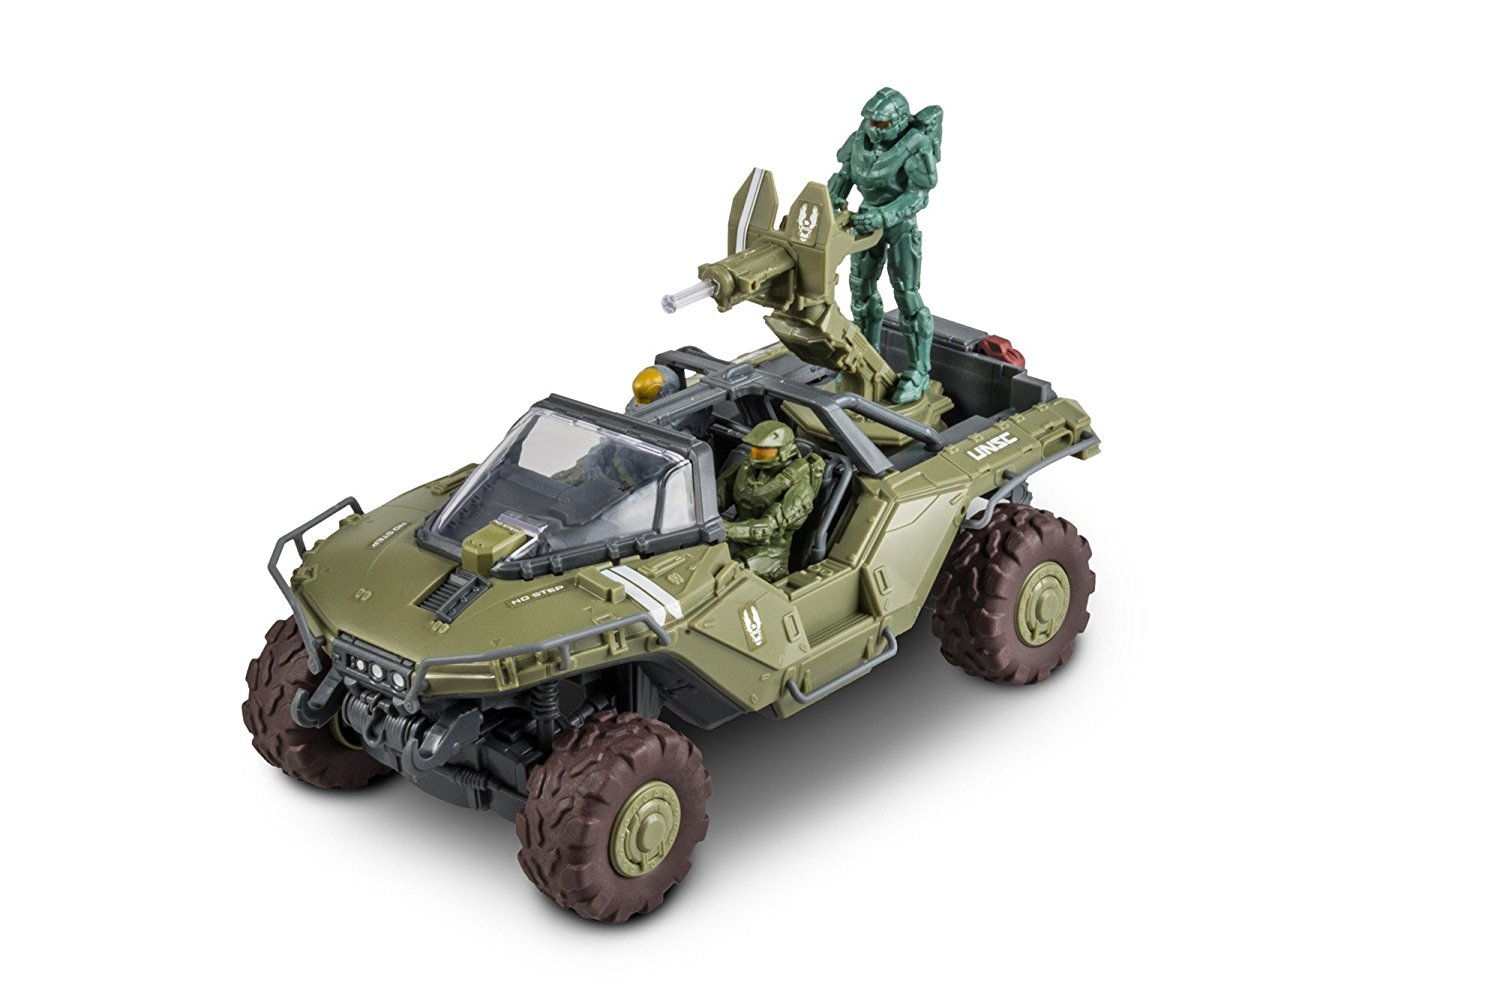 Snaptite Build and Play Halo 5 Warthog Model Kit, 53 easy Snaptite pieces, no glue, paint... by